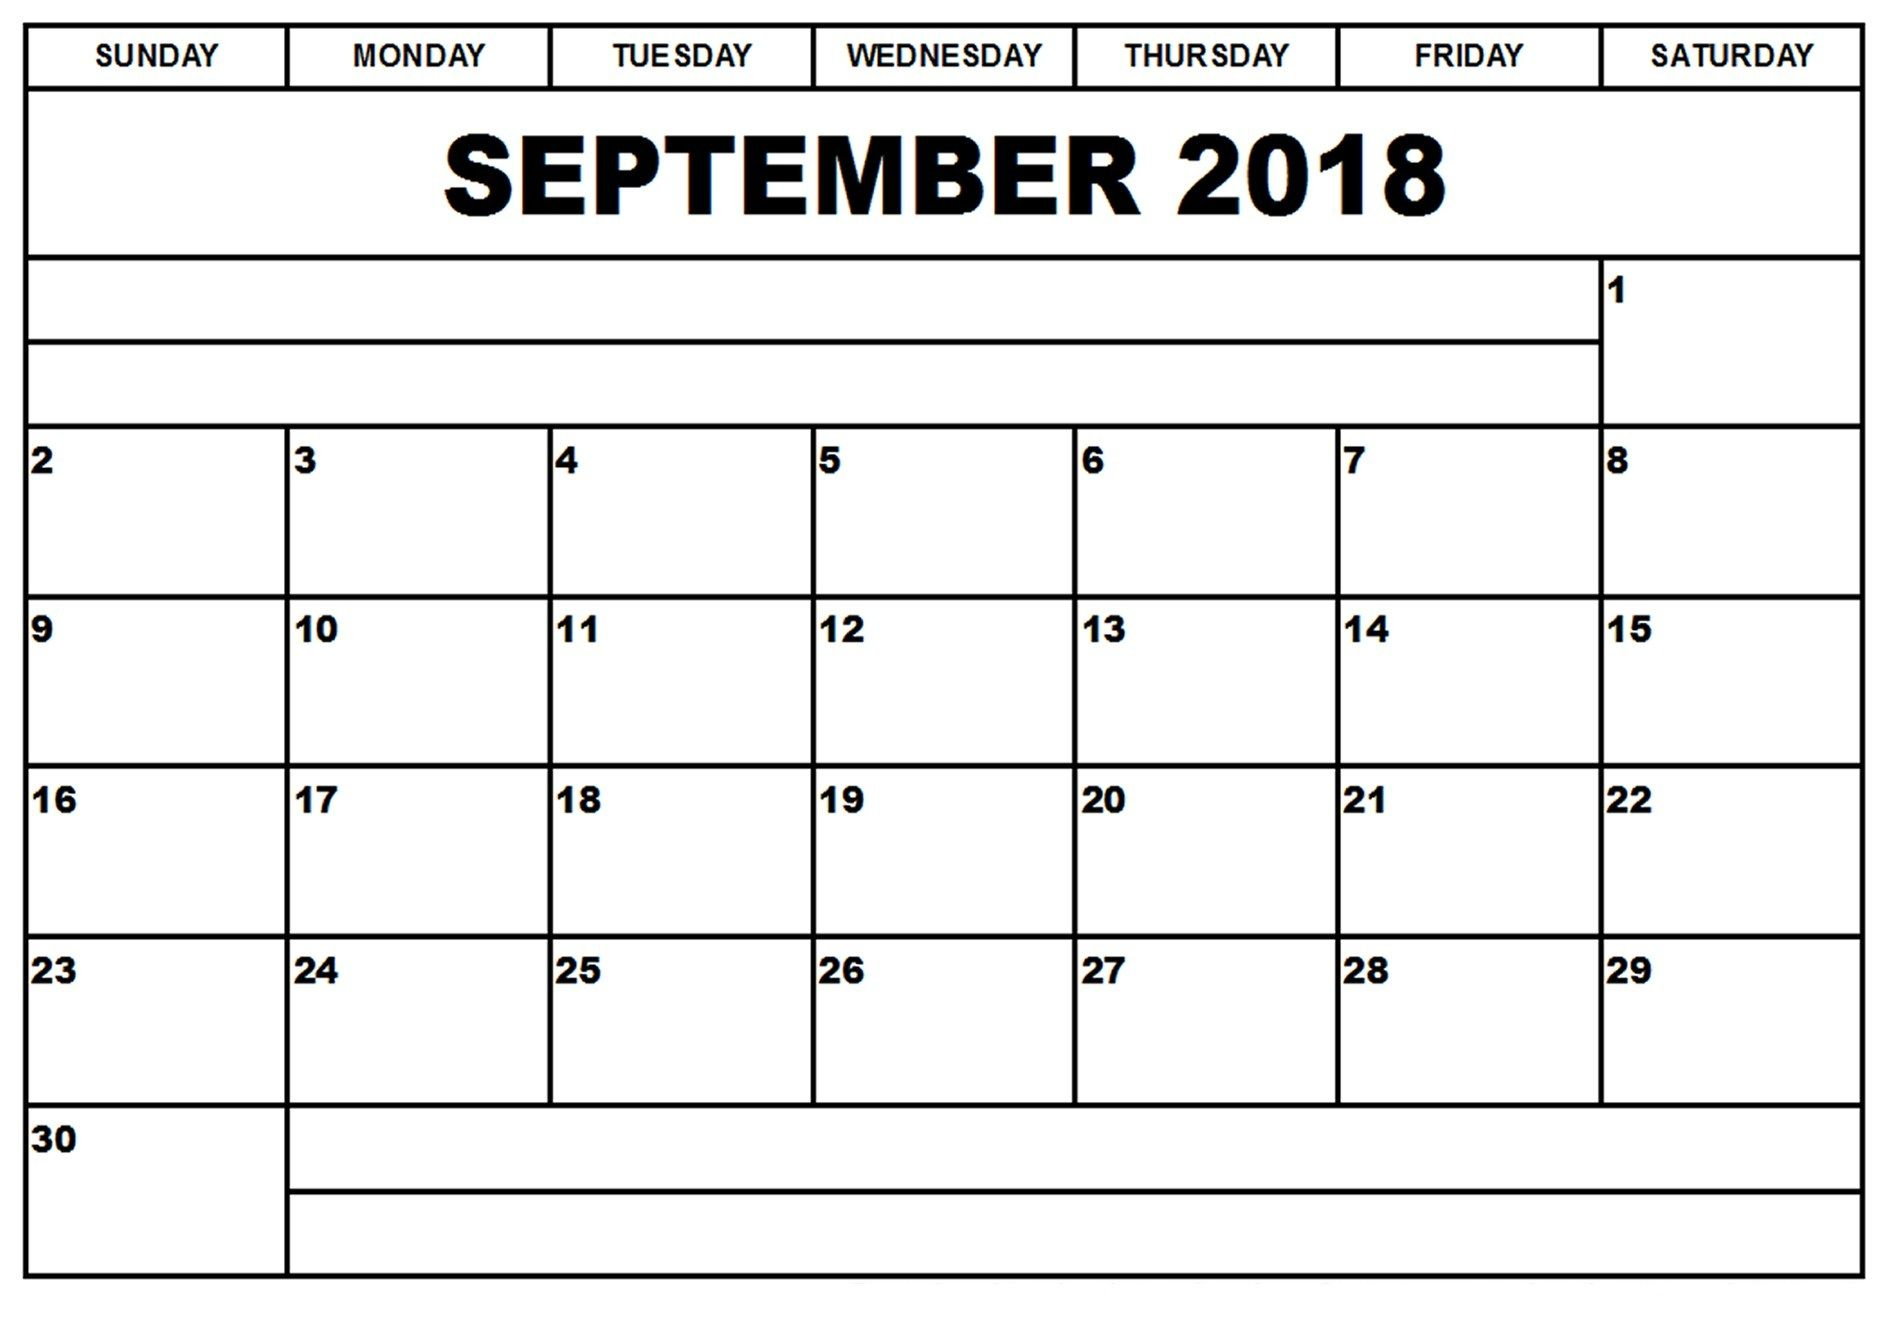 Blank September 2018 Clipart Calendar With Notes   Free Printable within Aug Calendar Clip Art Template